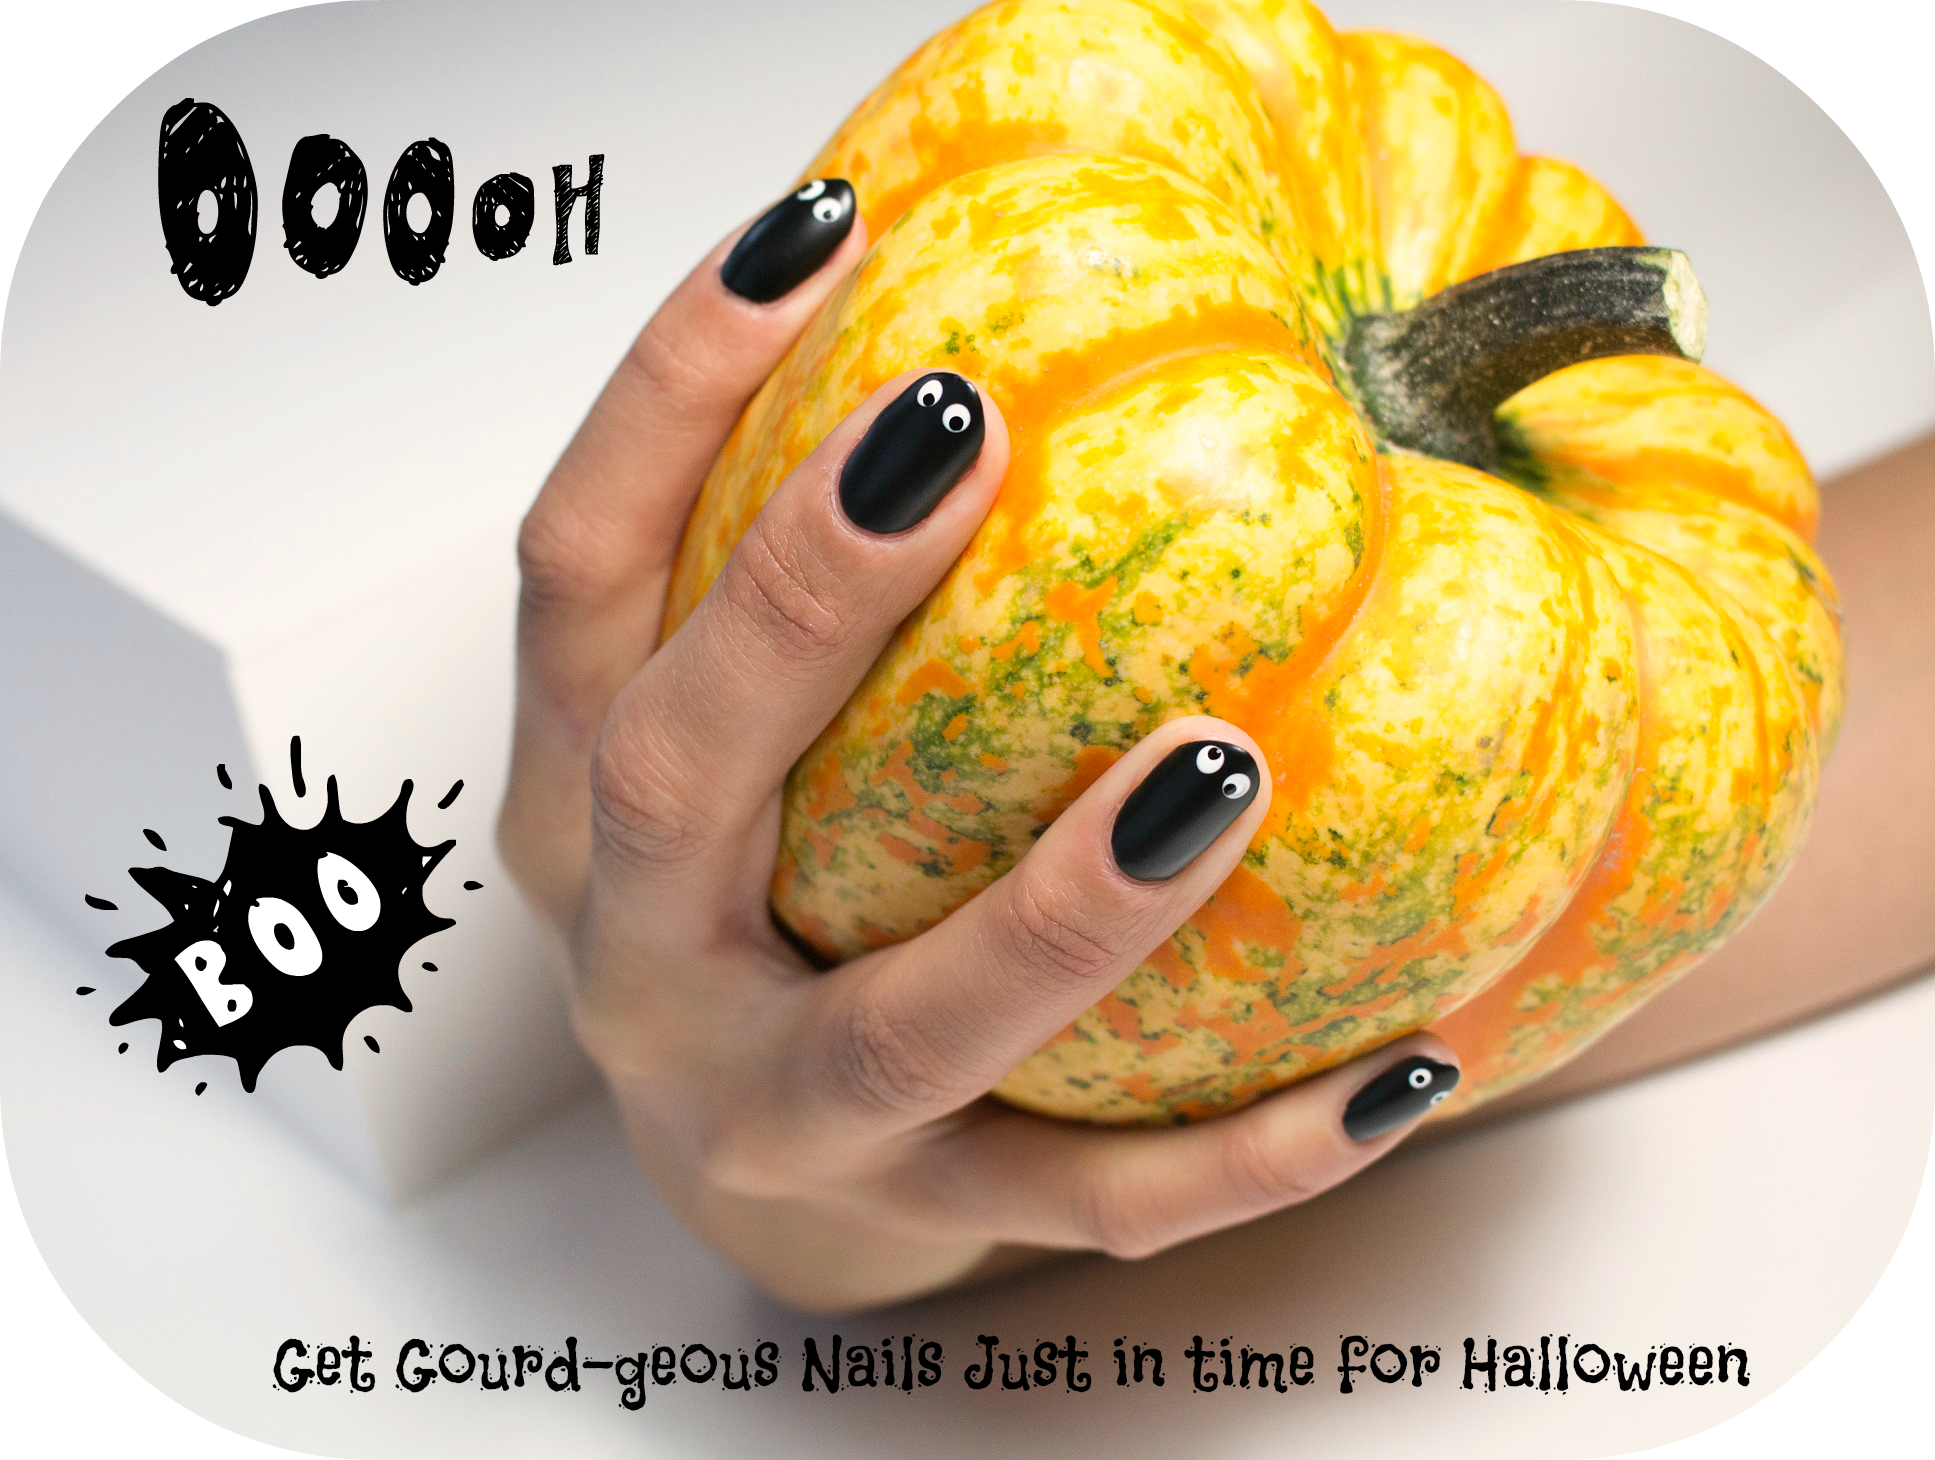 Get Gourd-geous Nails Just in time for Halloween